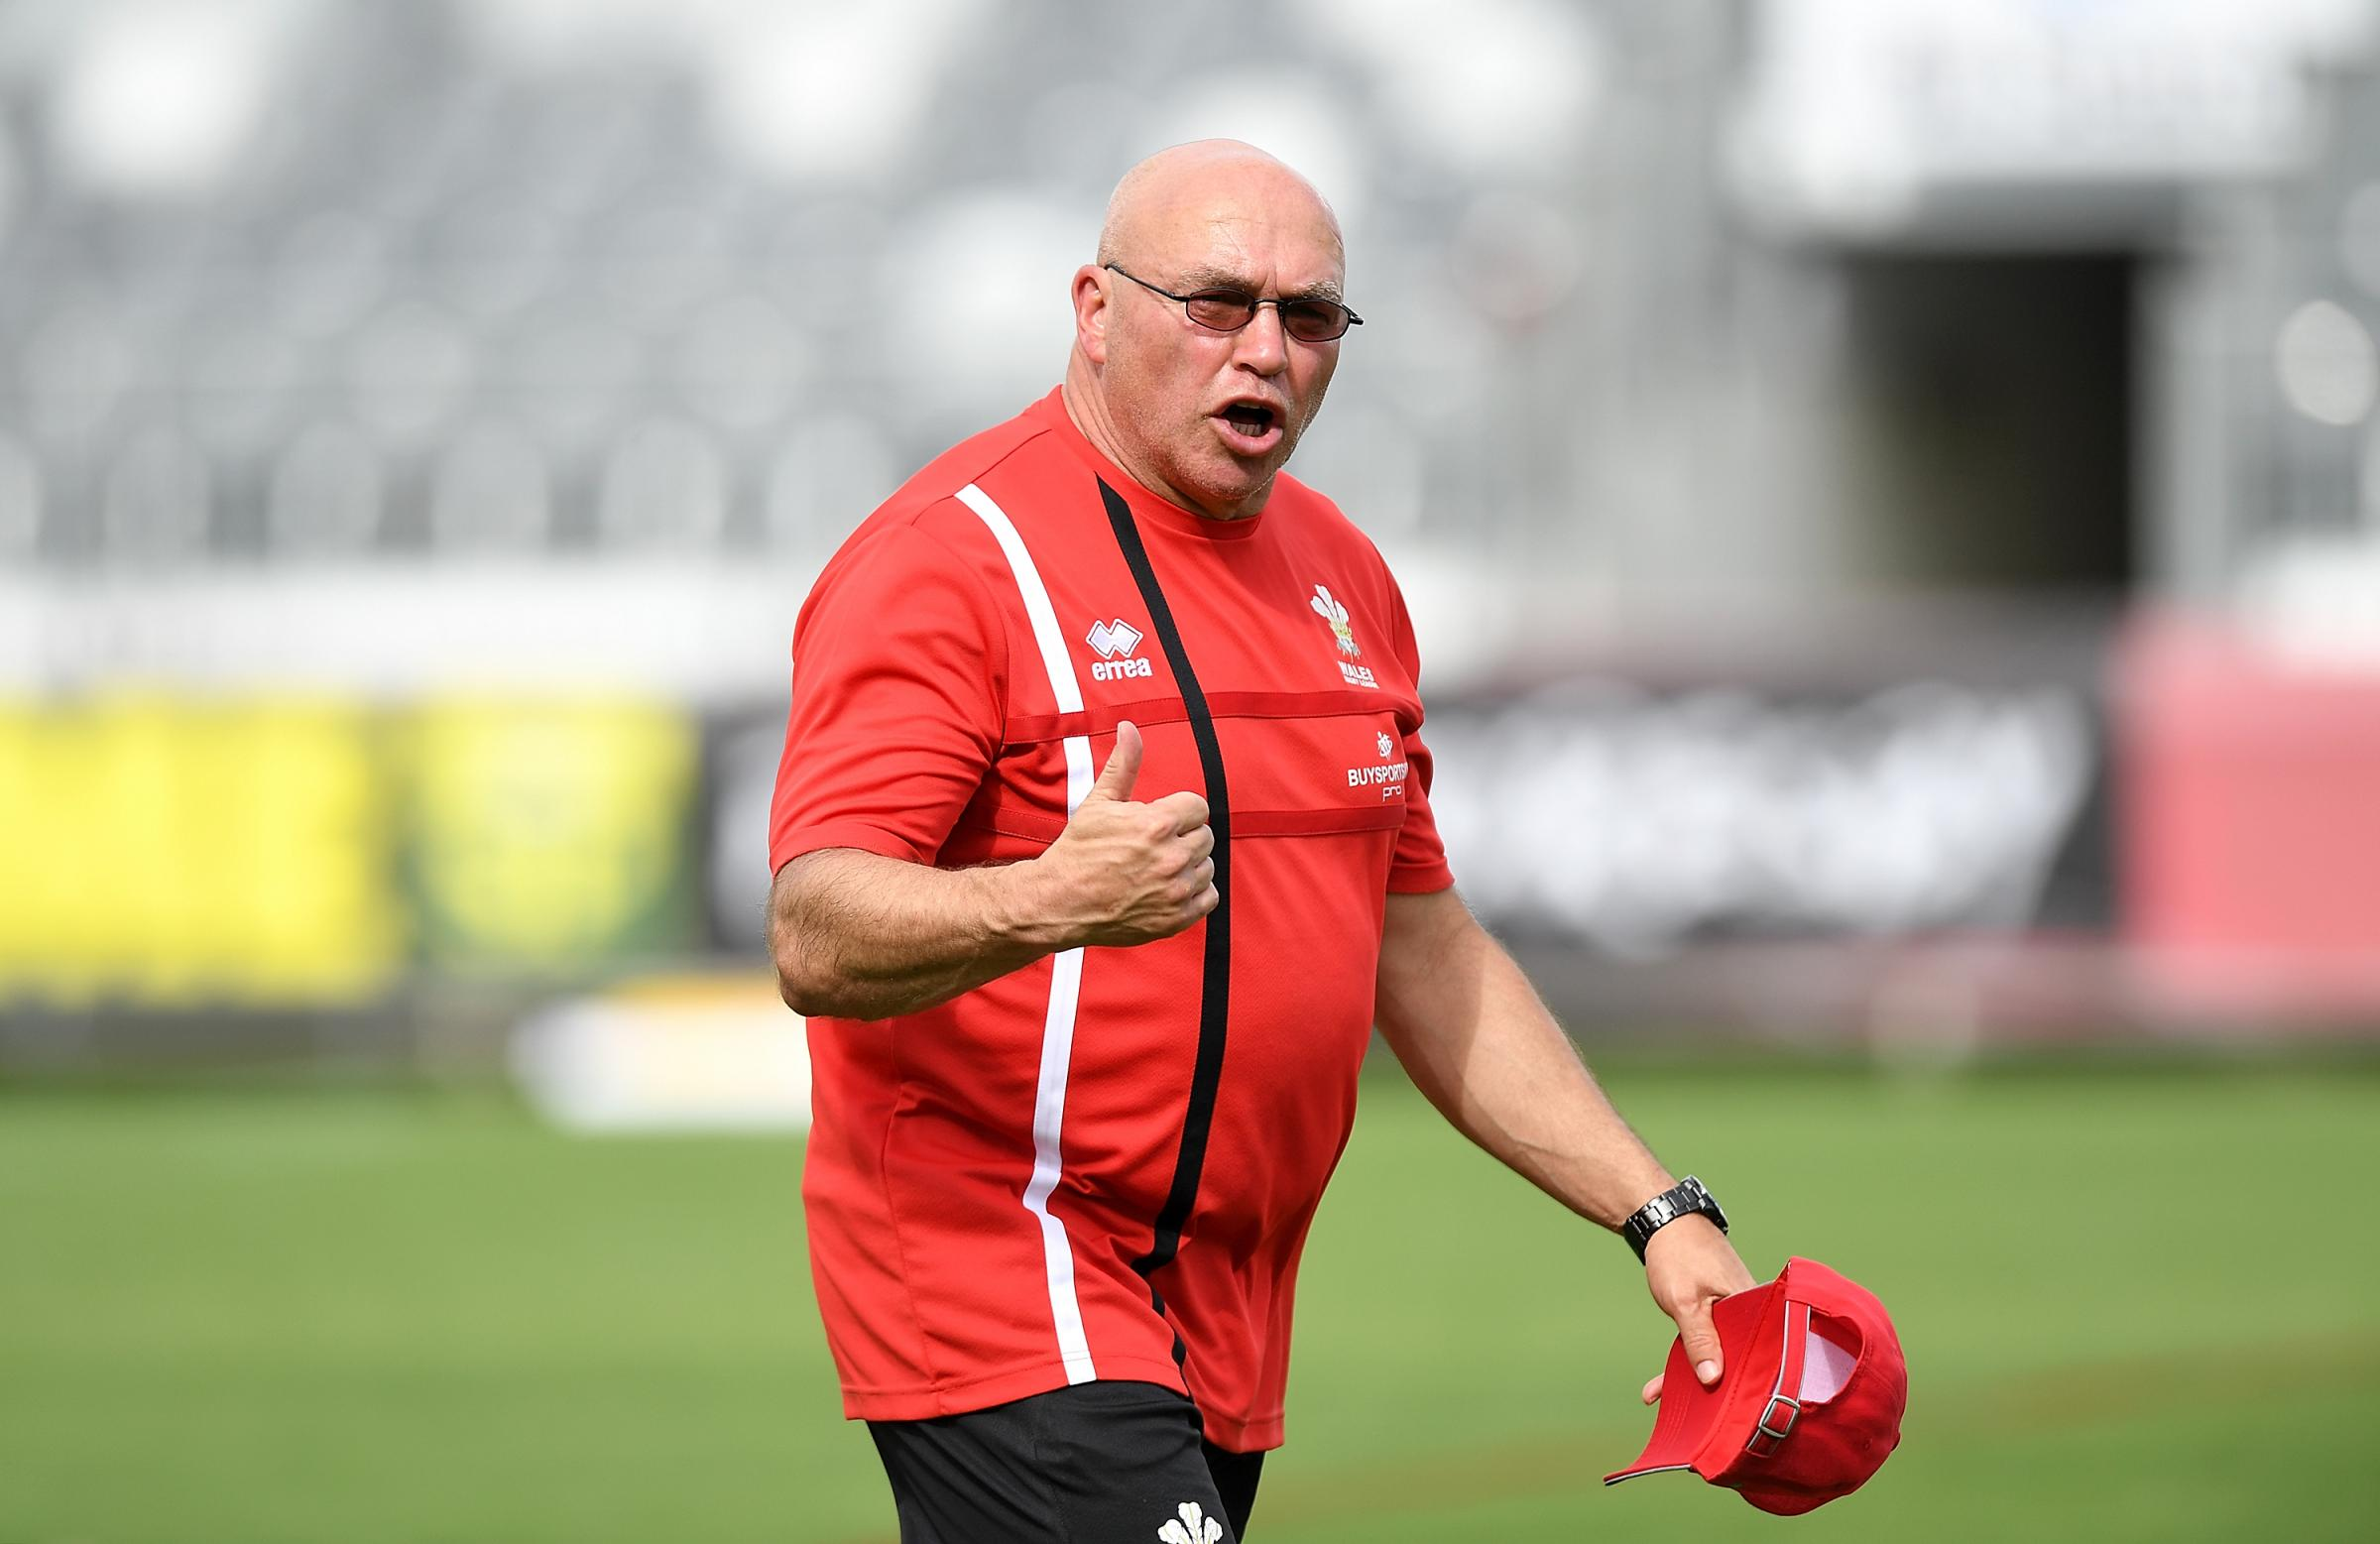 LEADING MAN: John Kear is the coach that Bulls have targeted to succeed Geoff Toovey